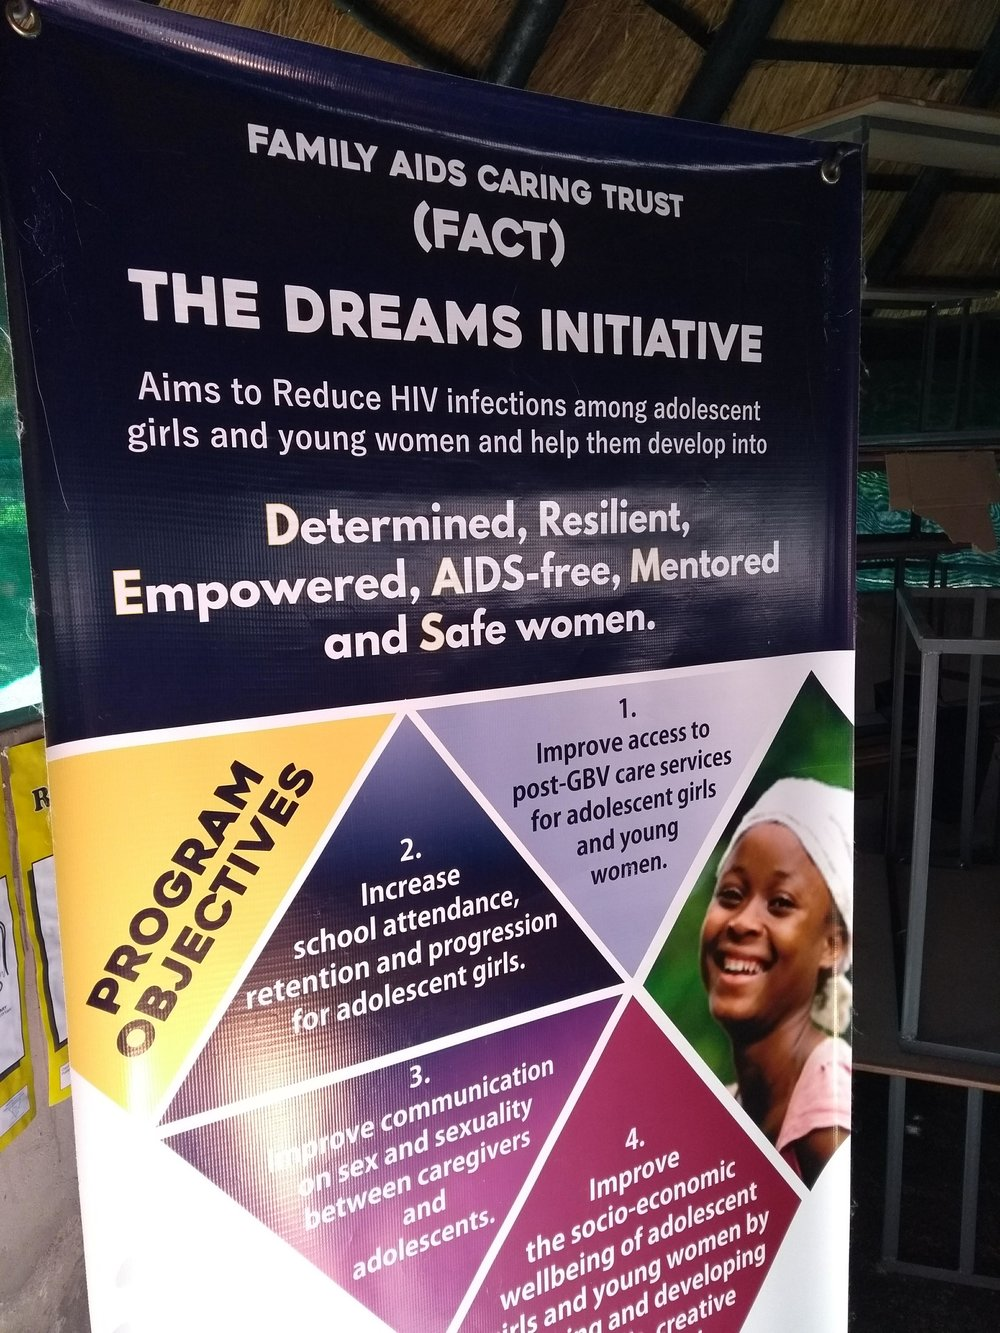 D.R.E.A.M.S initiative poster in the main meeting room at FACT.